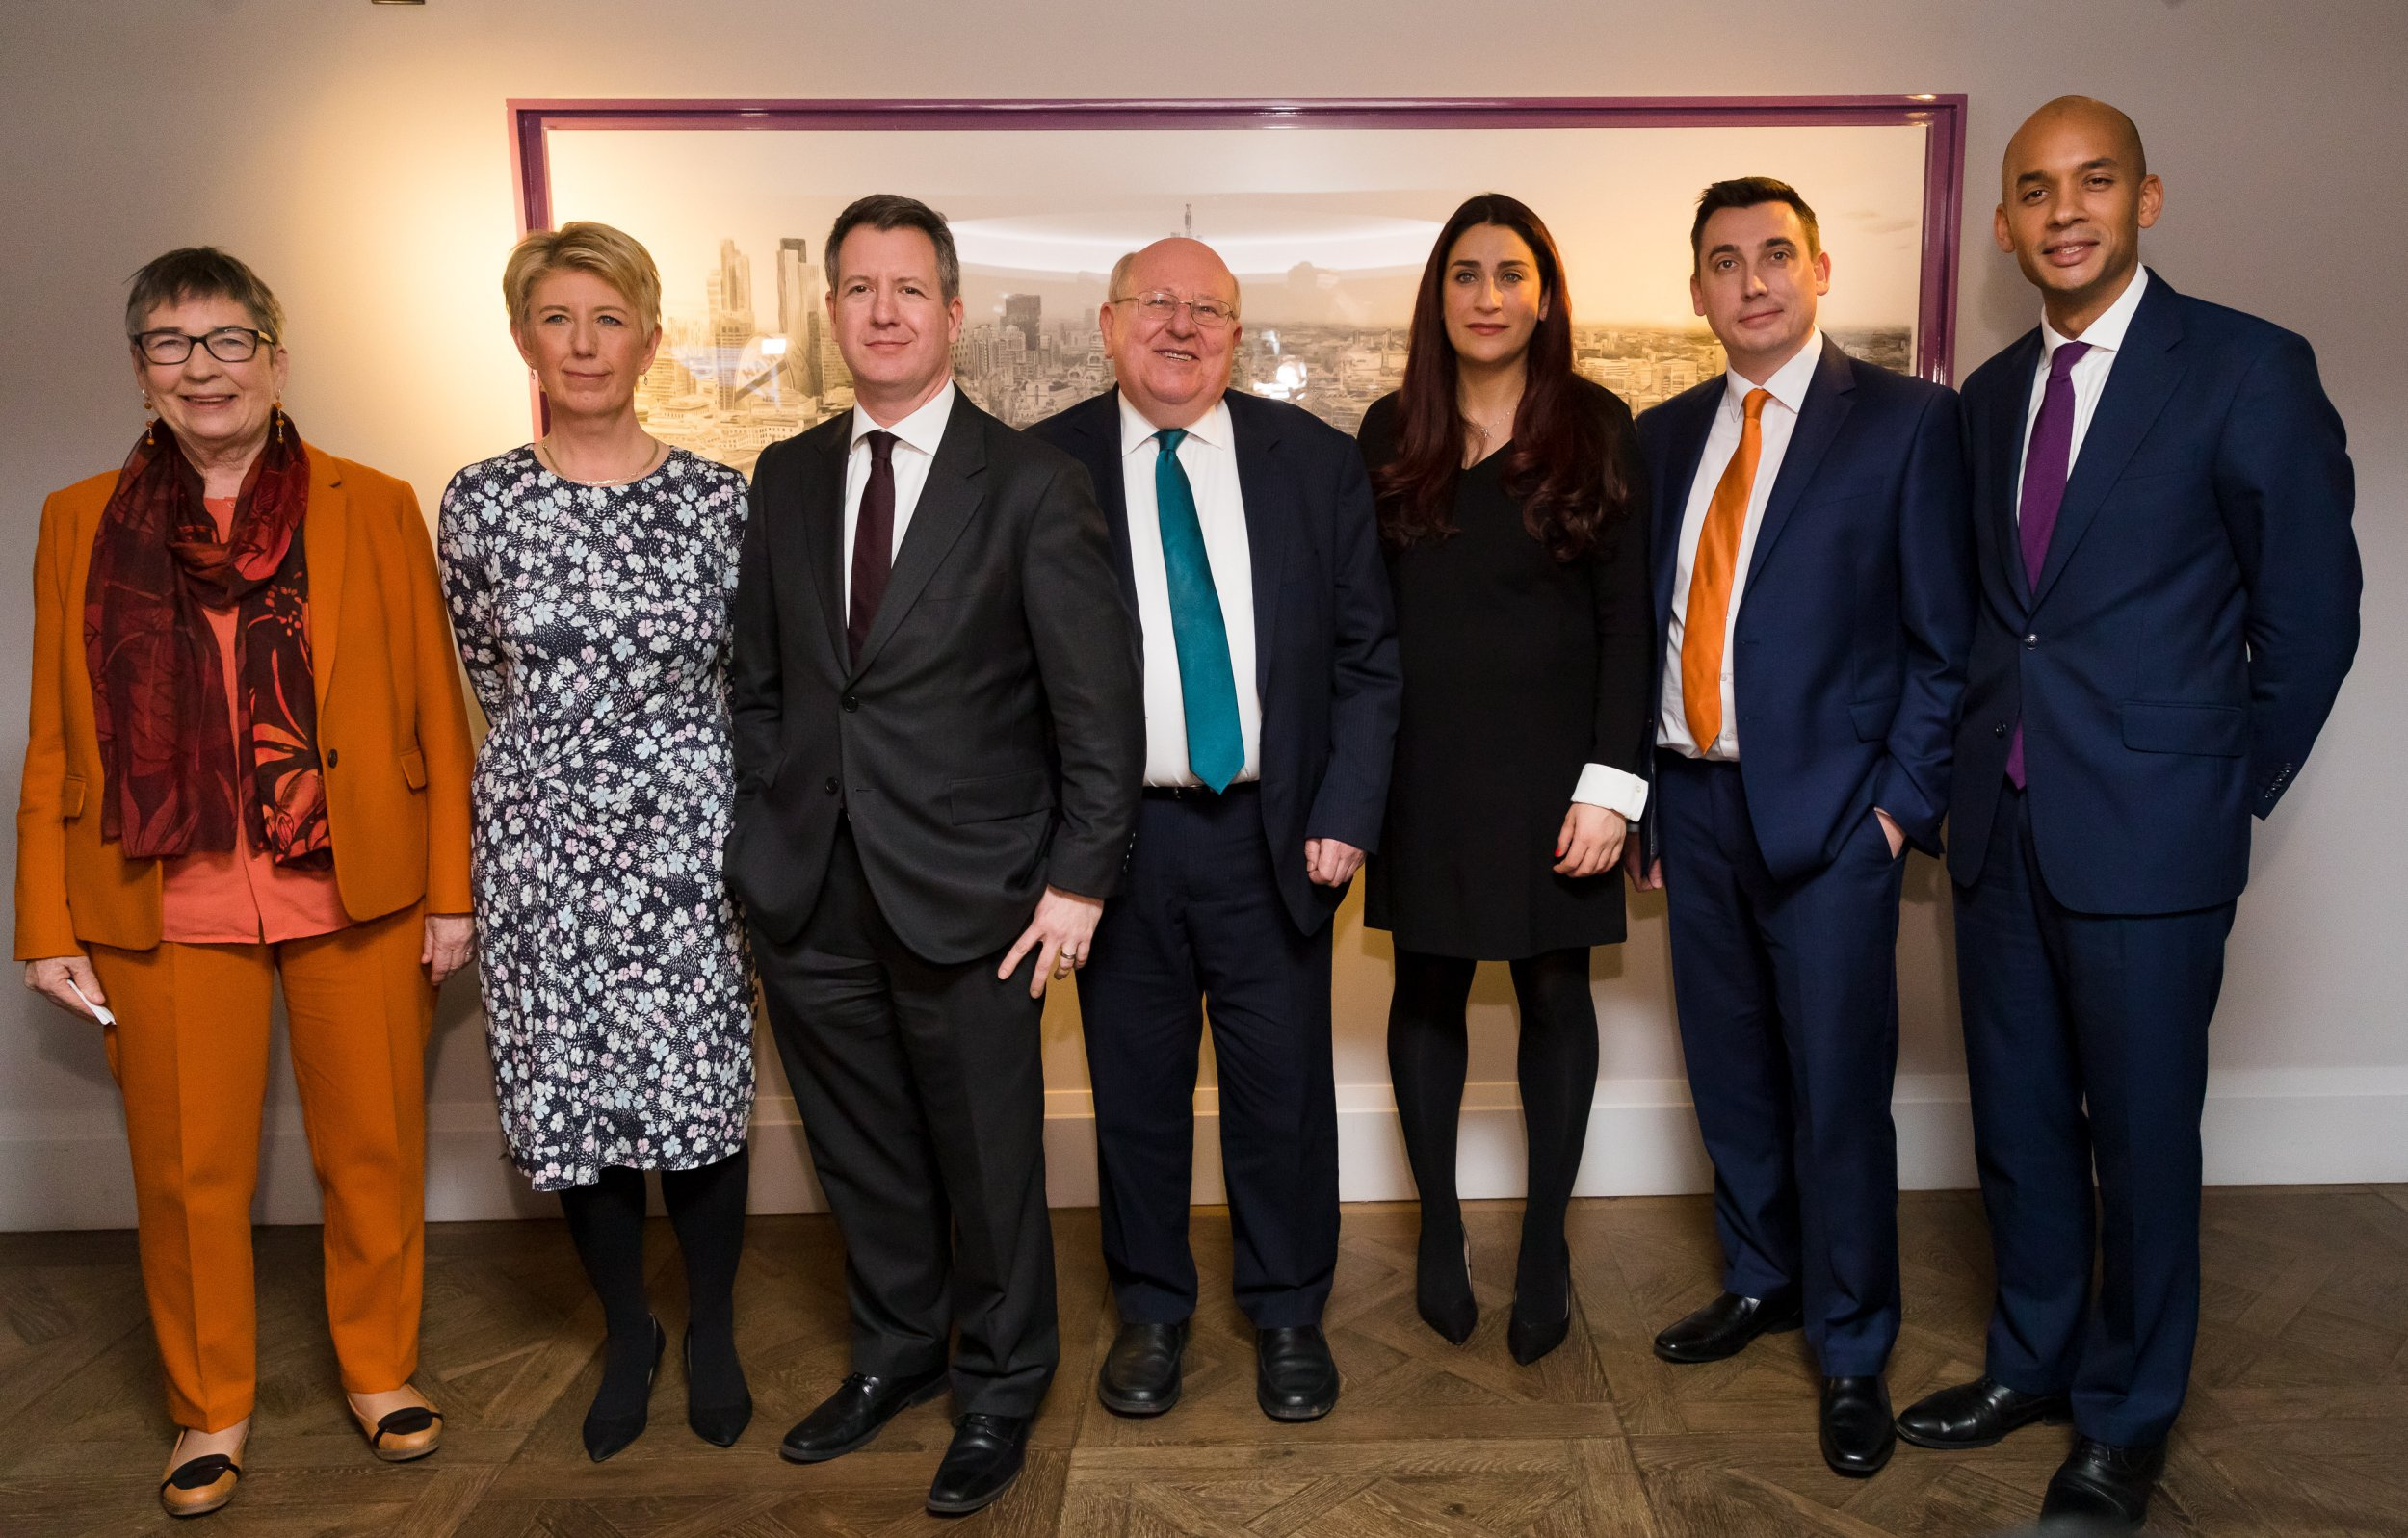 epa07378534 Former British Labour party MPs (L-R) Ann Coffey, Angela Smith, Chris Leslie, Mike Gapes, Luciana Berger, Gavin Shuker and Chuka Umunna pose for a photograph following a press conference in London, Britain, 18 February 2019, during which they announced their resignation from the Labour Party, and the formation of a new independent group of MPs. Speaking at a press conference in London, the seven MP's attacked party chief Jeremy Corbyn for leading the party to the far left and said they would sit as an independent group in parliament. EPA/VICKIE FLORES